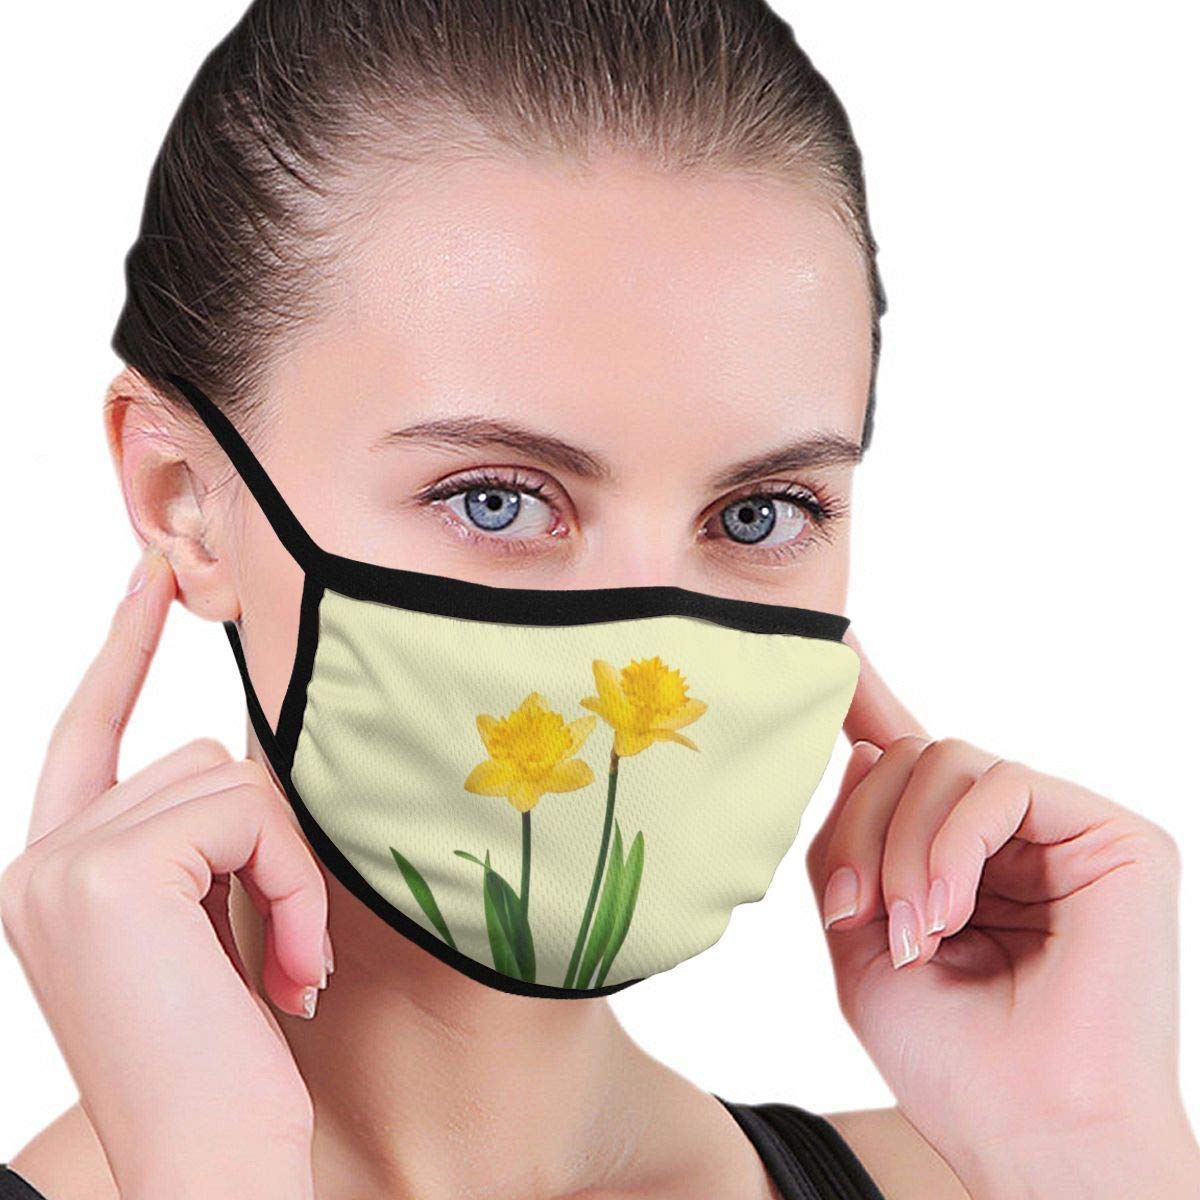 Bdwuhs Mascarillas Bucales Yellow Spring Daffodils – Daffodil Template Anti Pollution Dust Mask Washable and Reusable Polyester Face Mouth Mask Protection from Flu Germ Pollen Allergy Respirator Mask